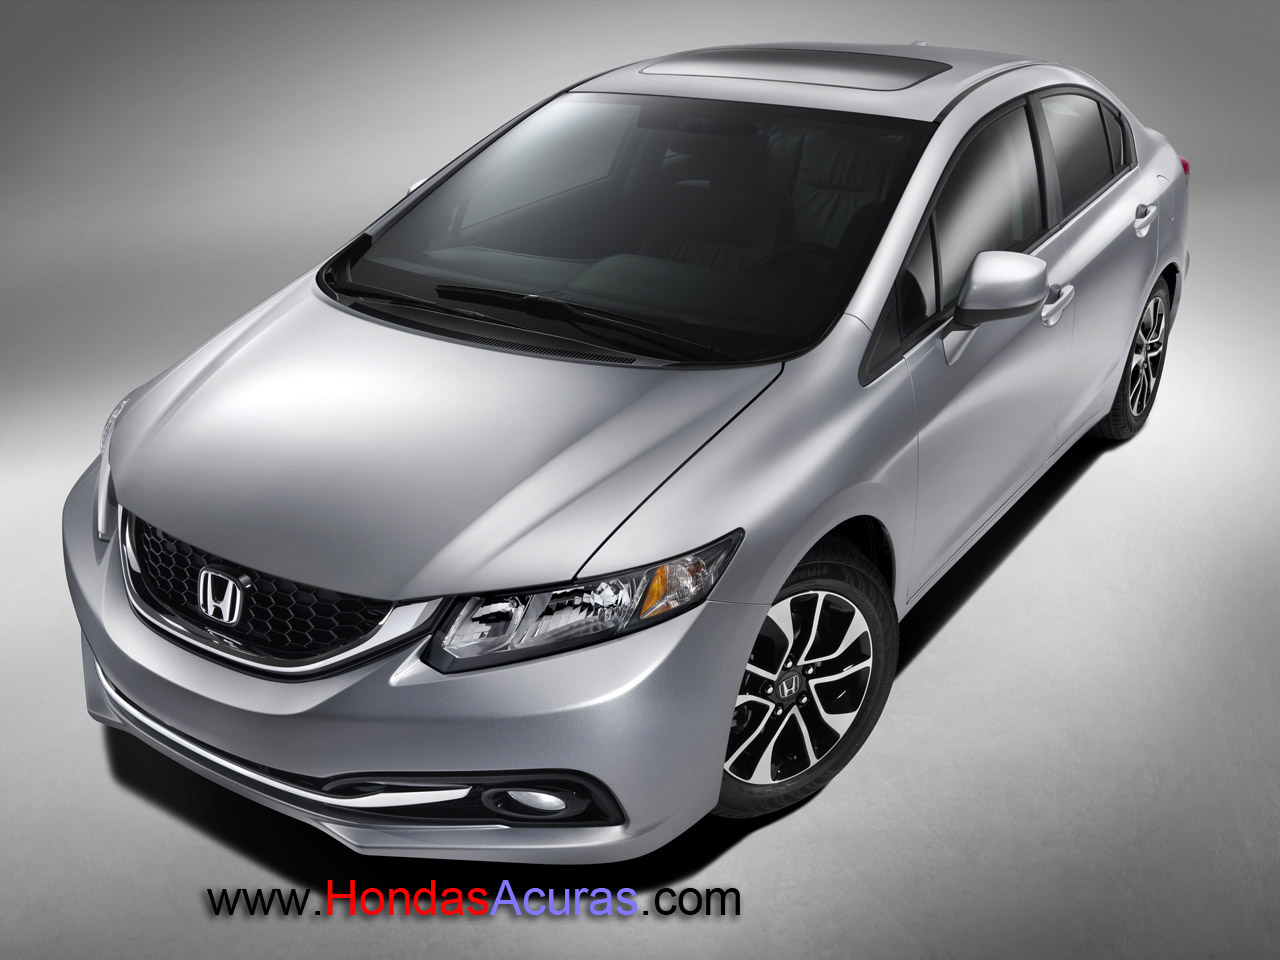 New Whats New For The 2014 Crosstour Release, Reviews and Models on